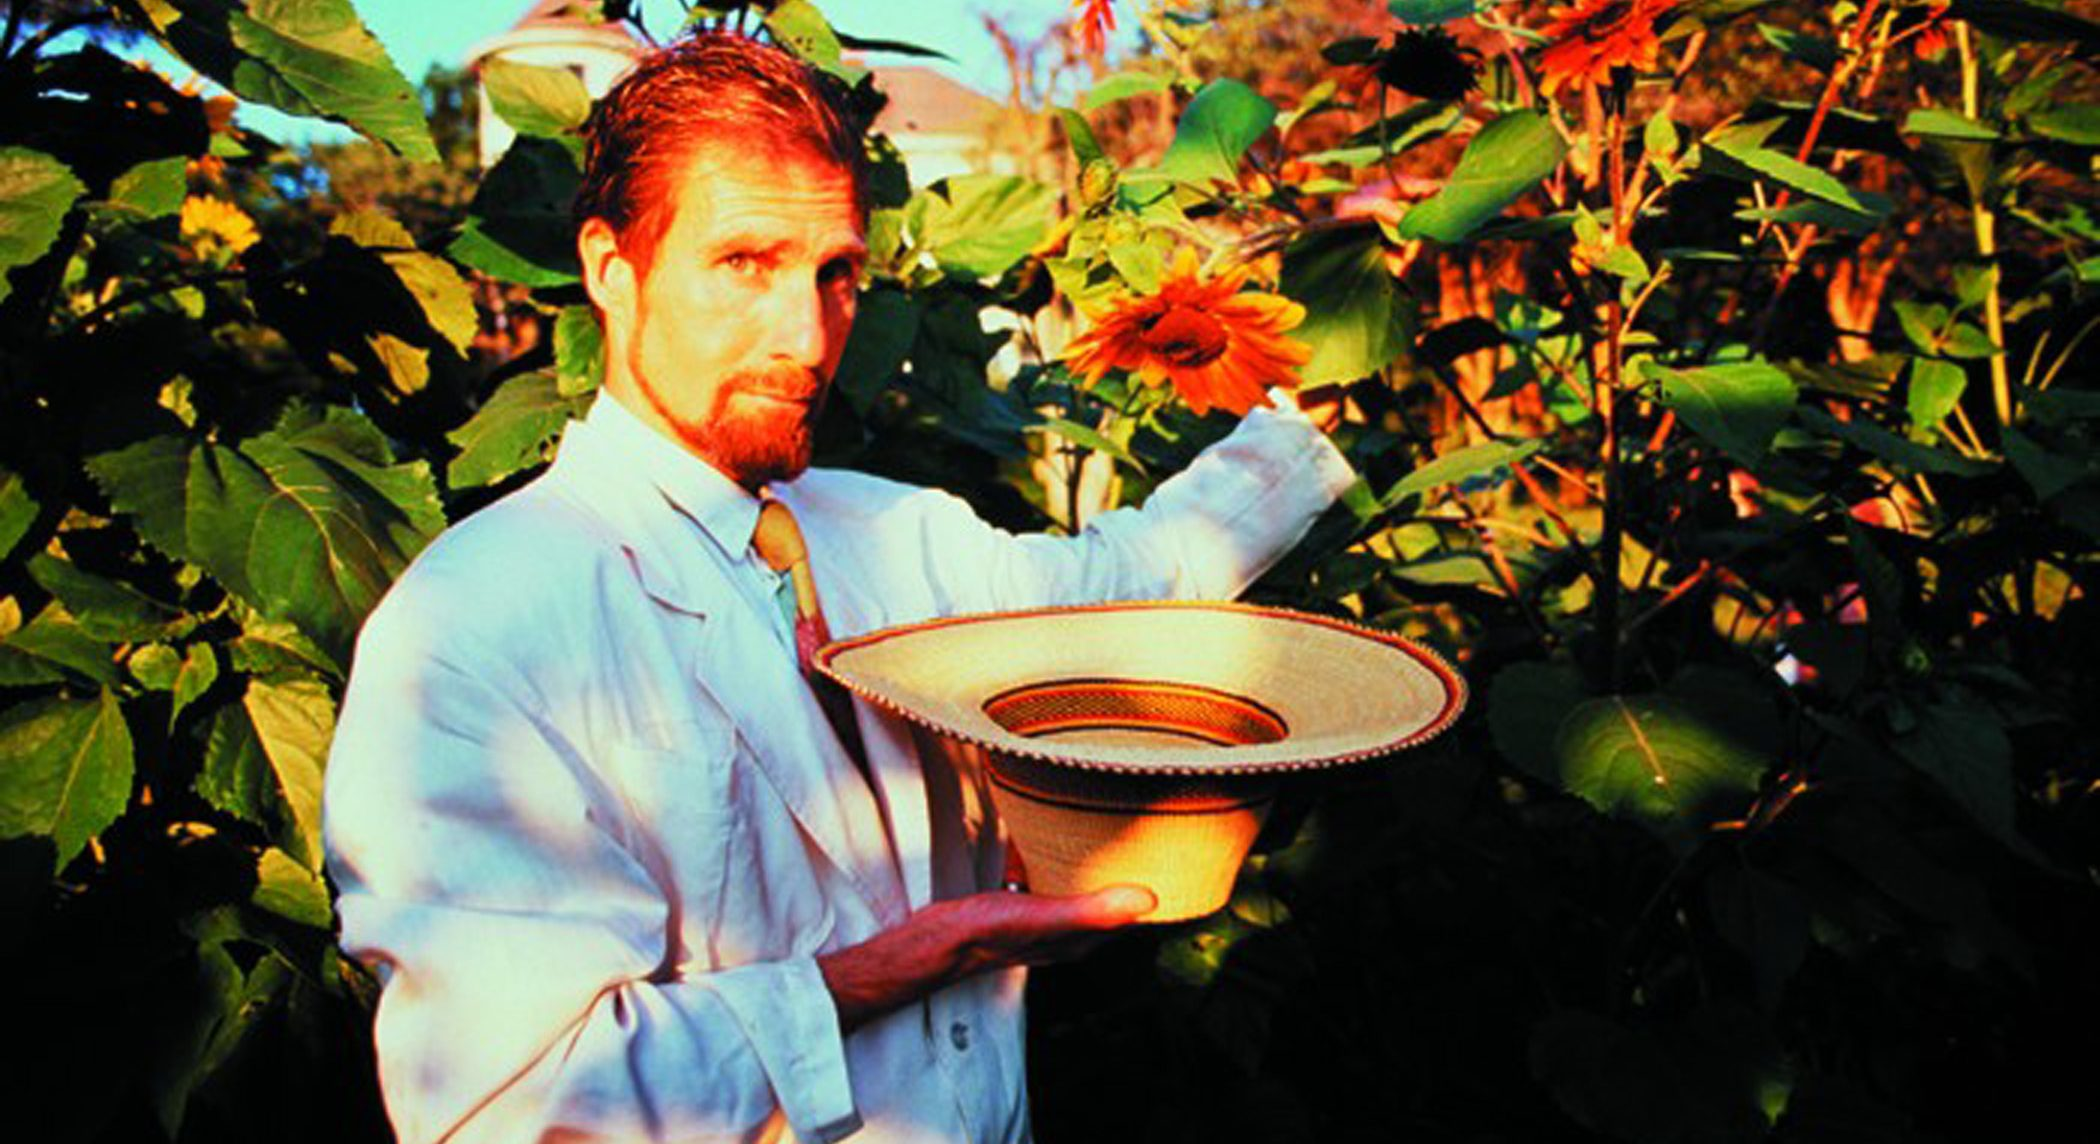 MP with sunflowers Photo By Jack Vartoogian